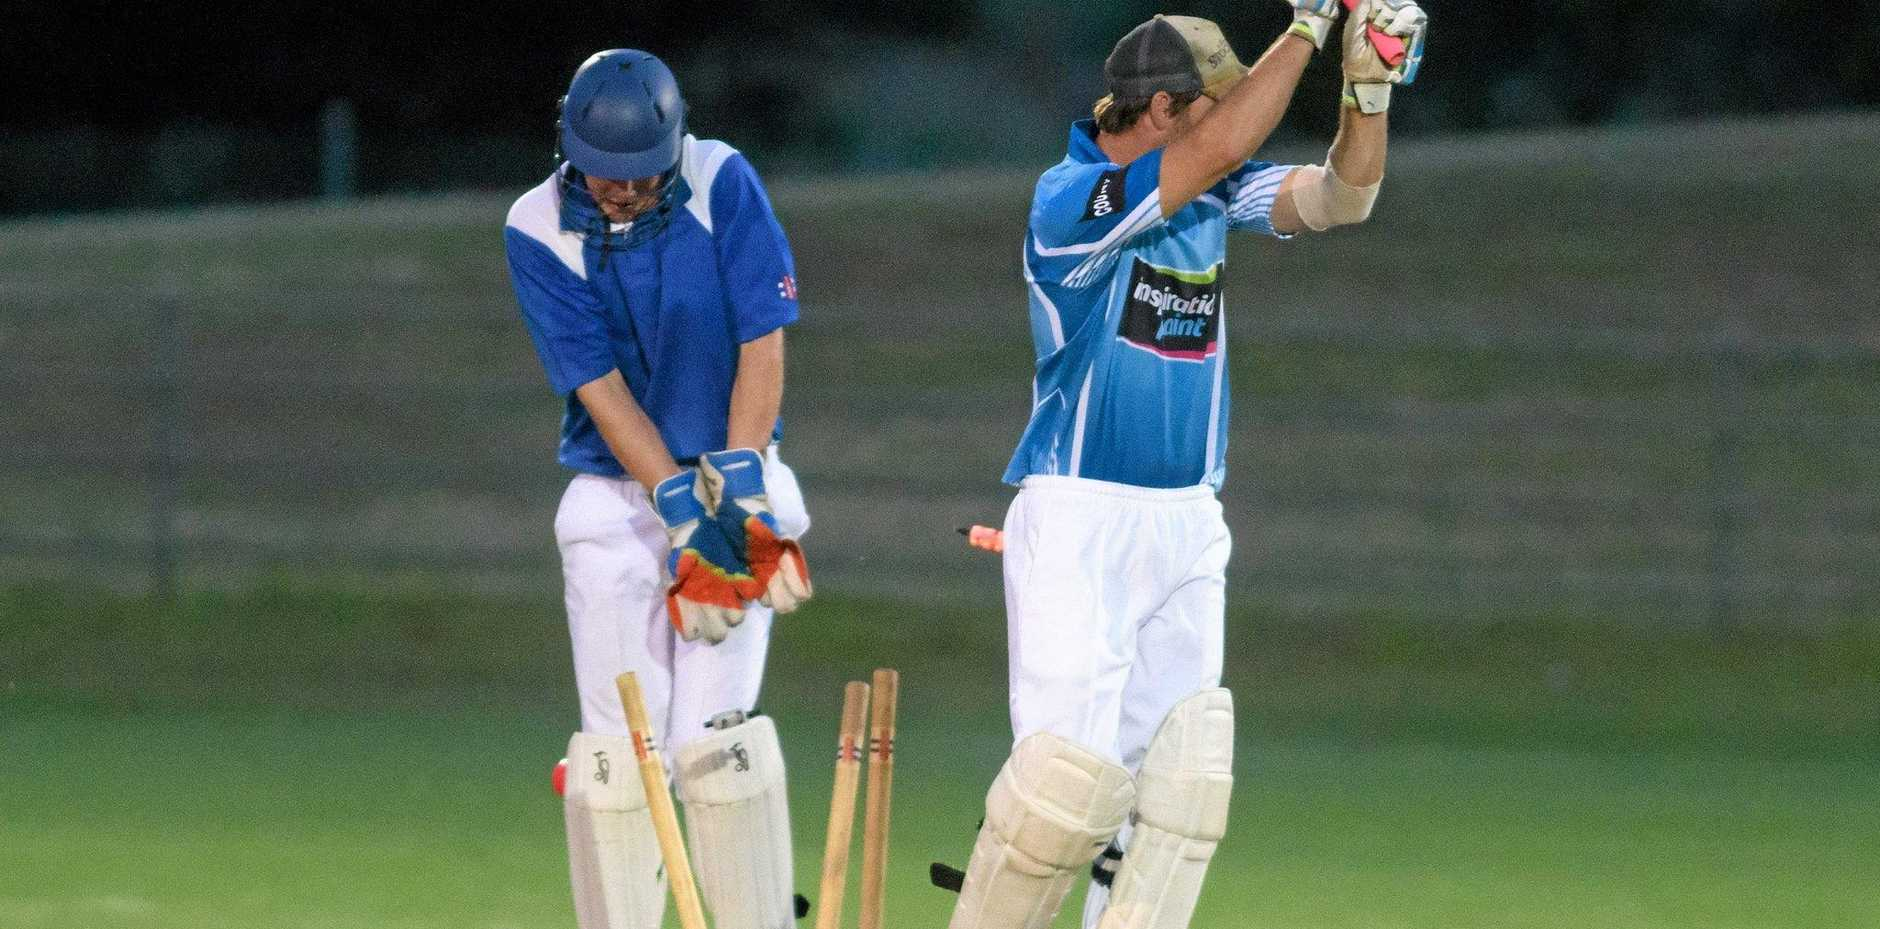 Coutts Crossing's Corey Kempshall is bowled in the night cricket grand final at McKittrick Park.